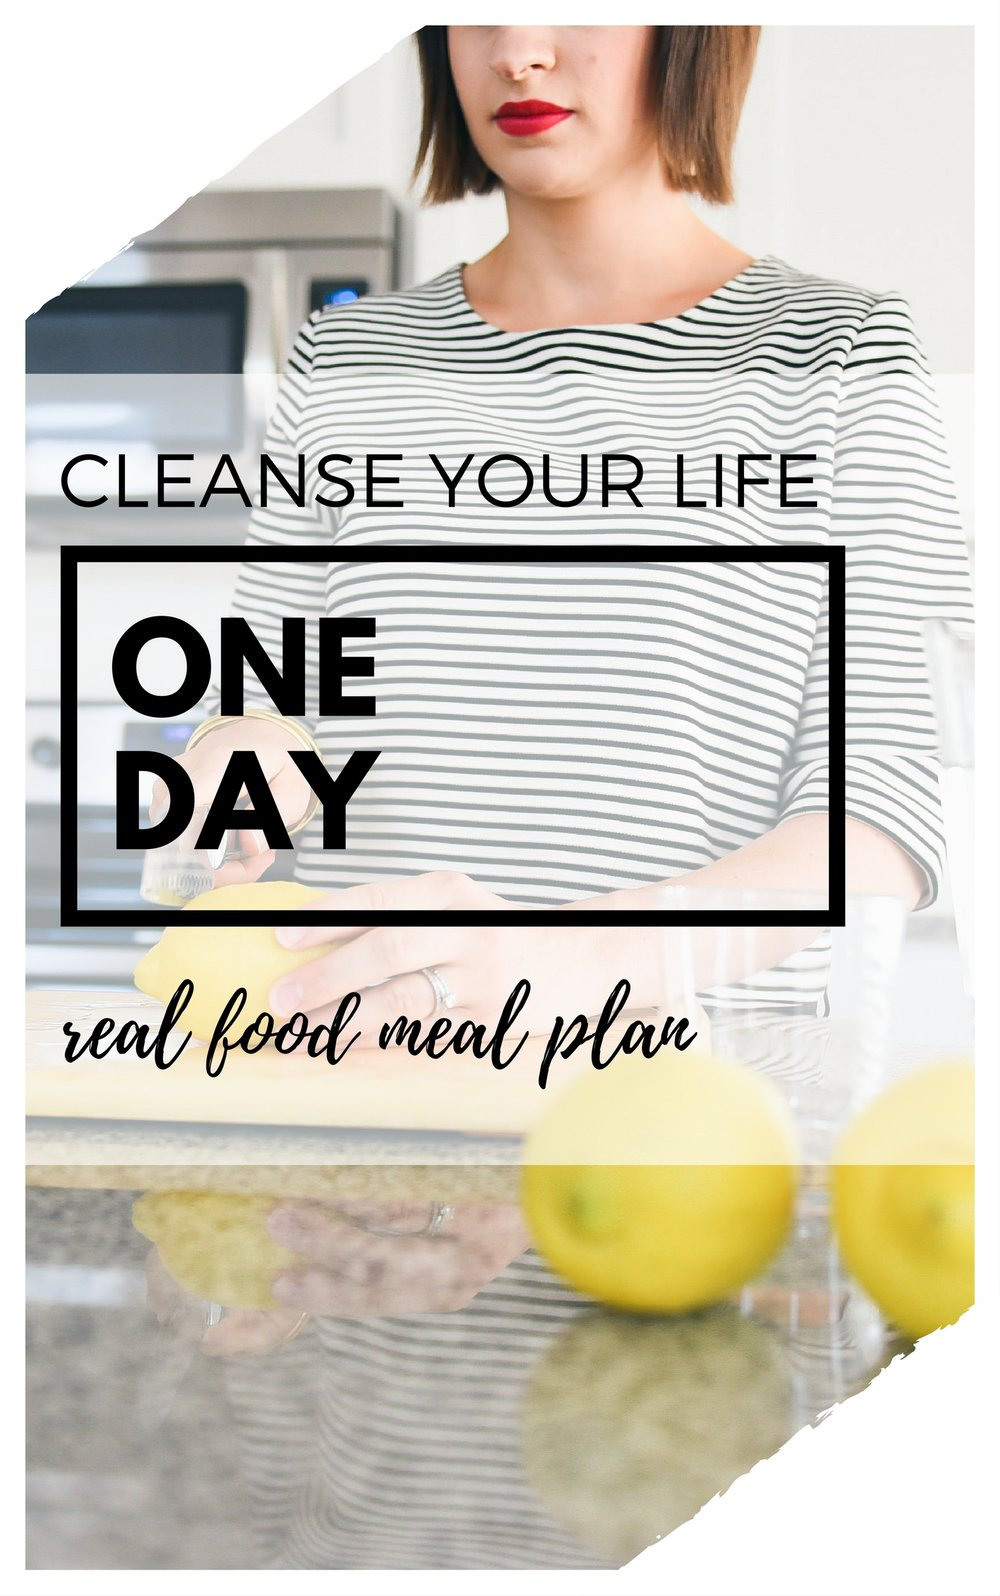 One Day Real Food Meal Plan.jpg